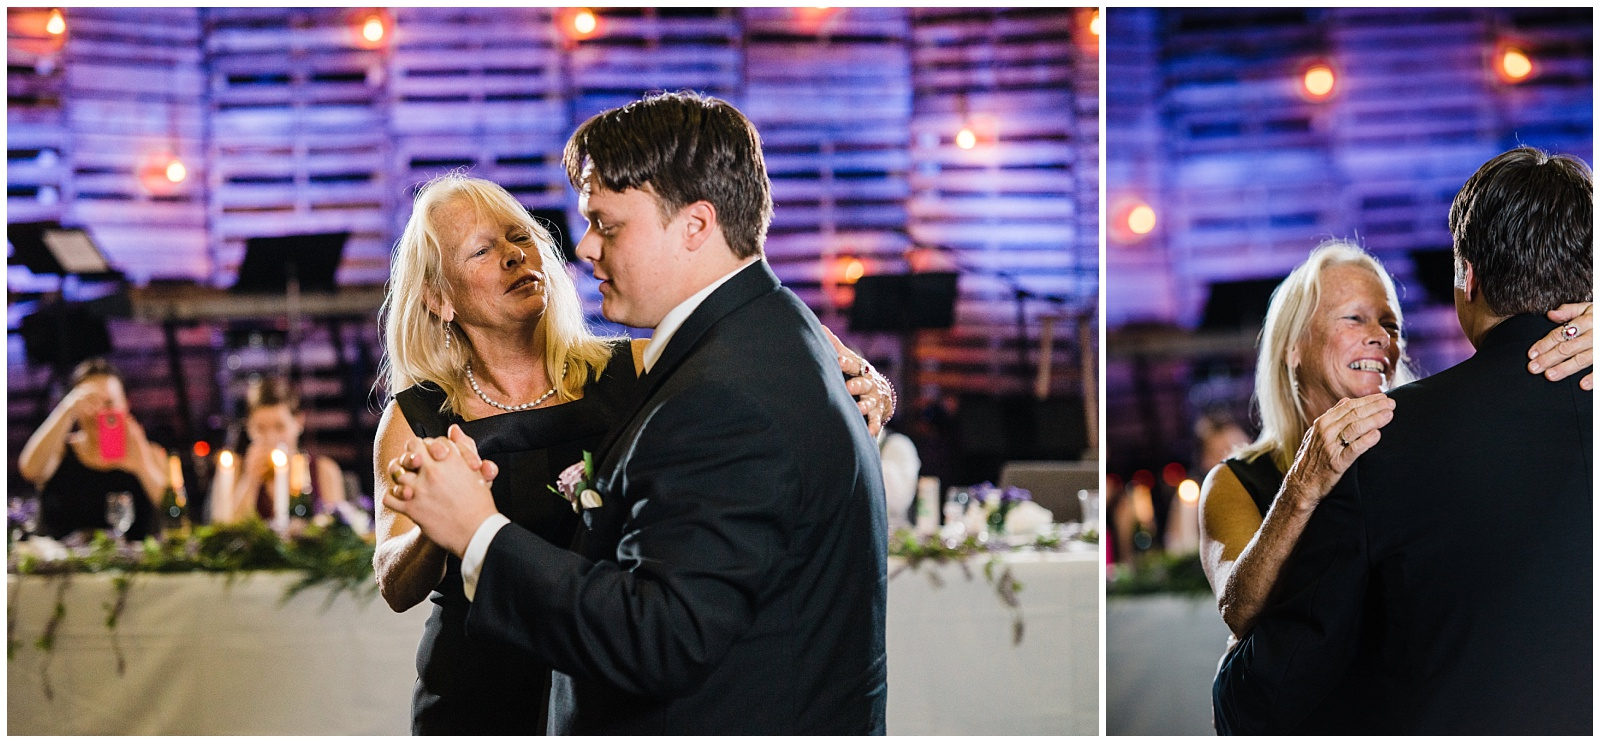 And the  Mother/Son dance. Oh my goodness!  I can't even go there, but I love watching these. And this one was so sweet.